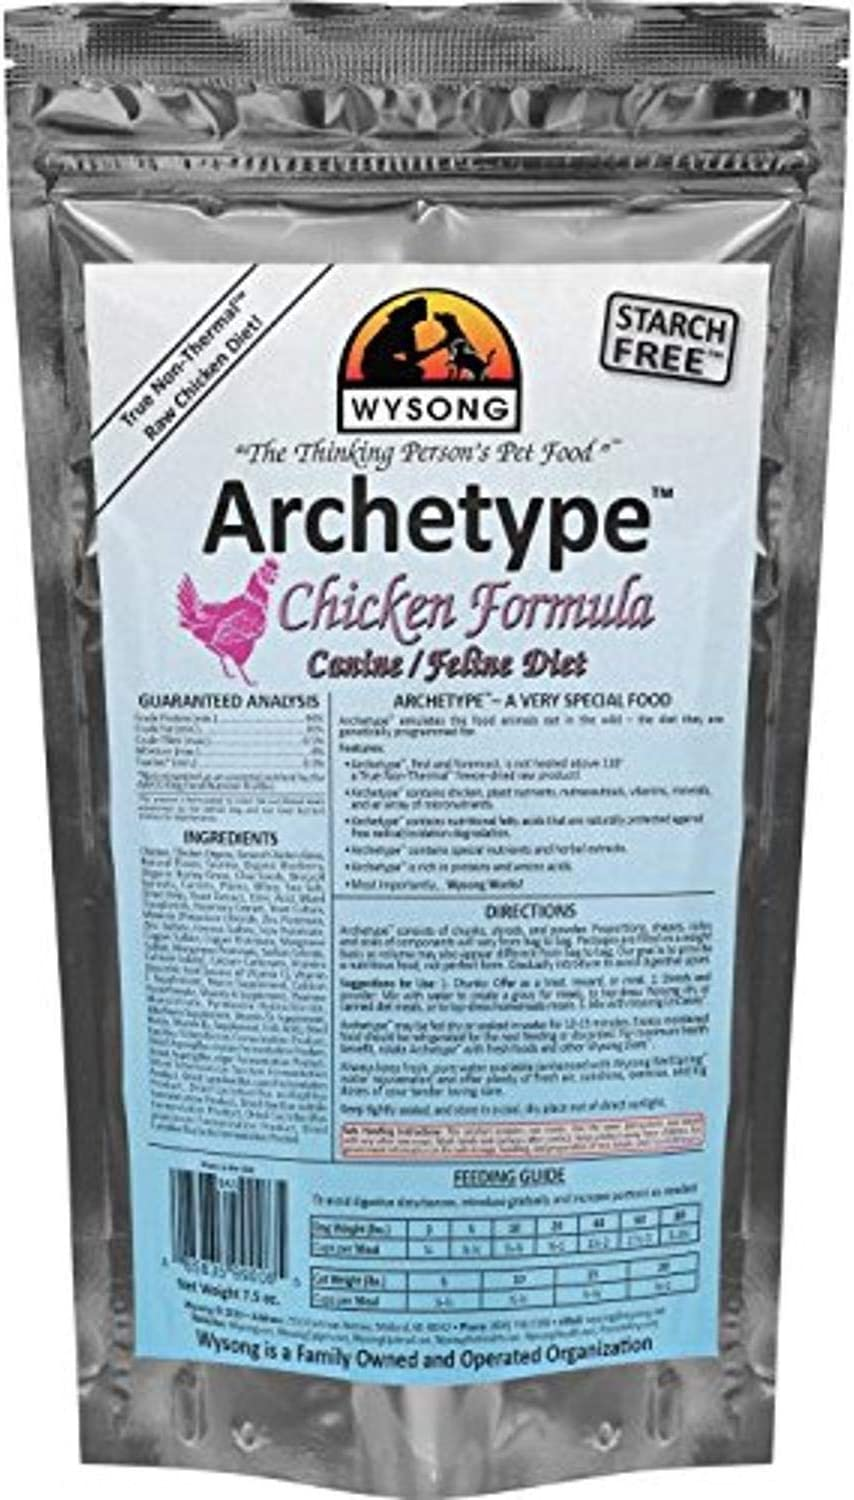 Wysong Archetype Raw Canine/Feline Diet Dog/Cat Food - 7.5 Ounce Bag